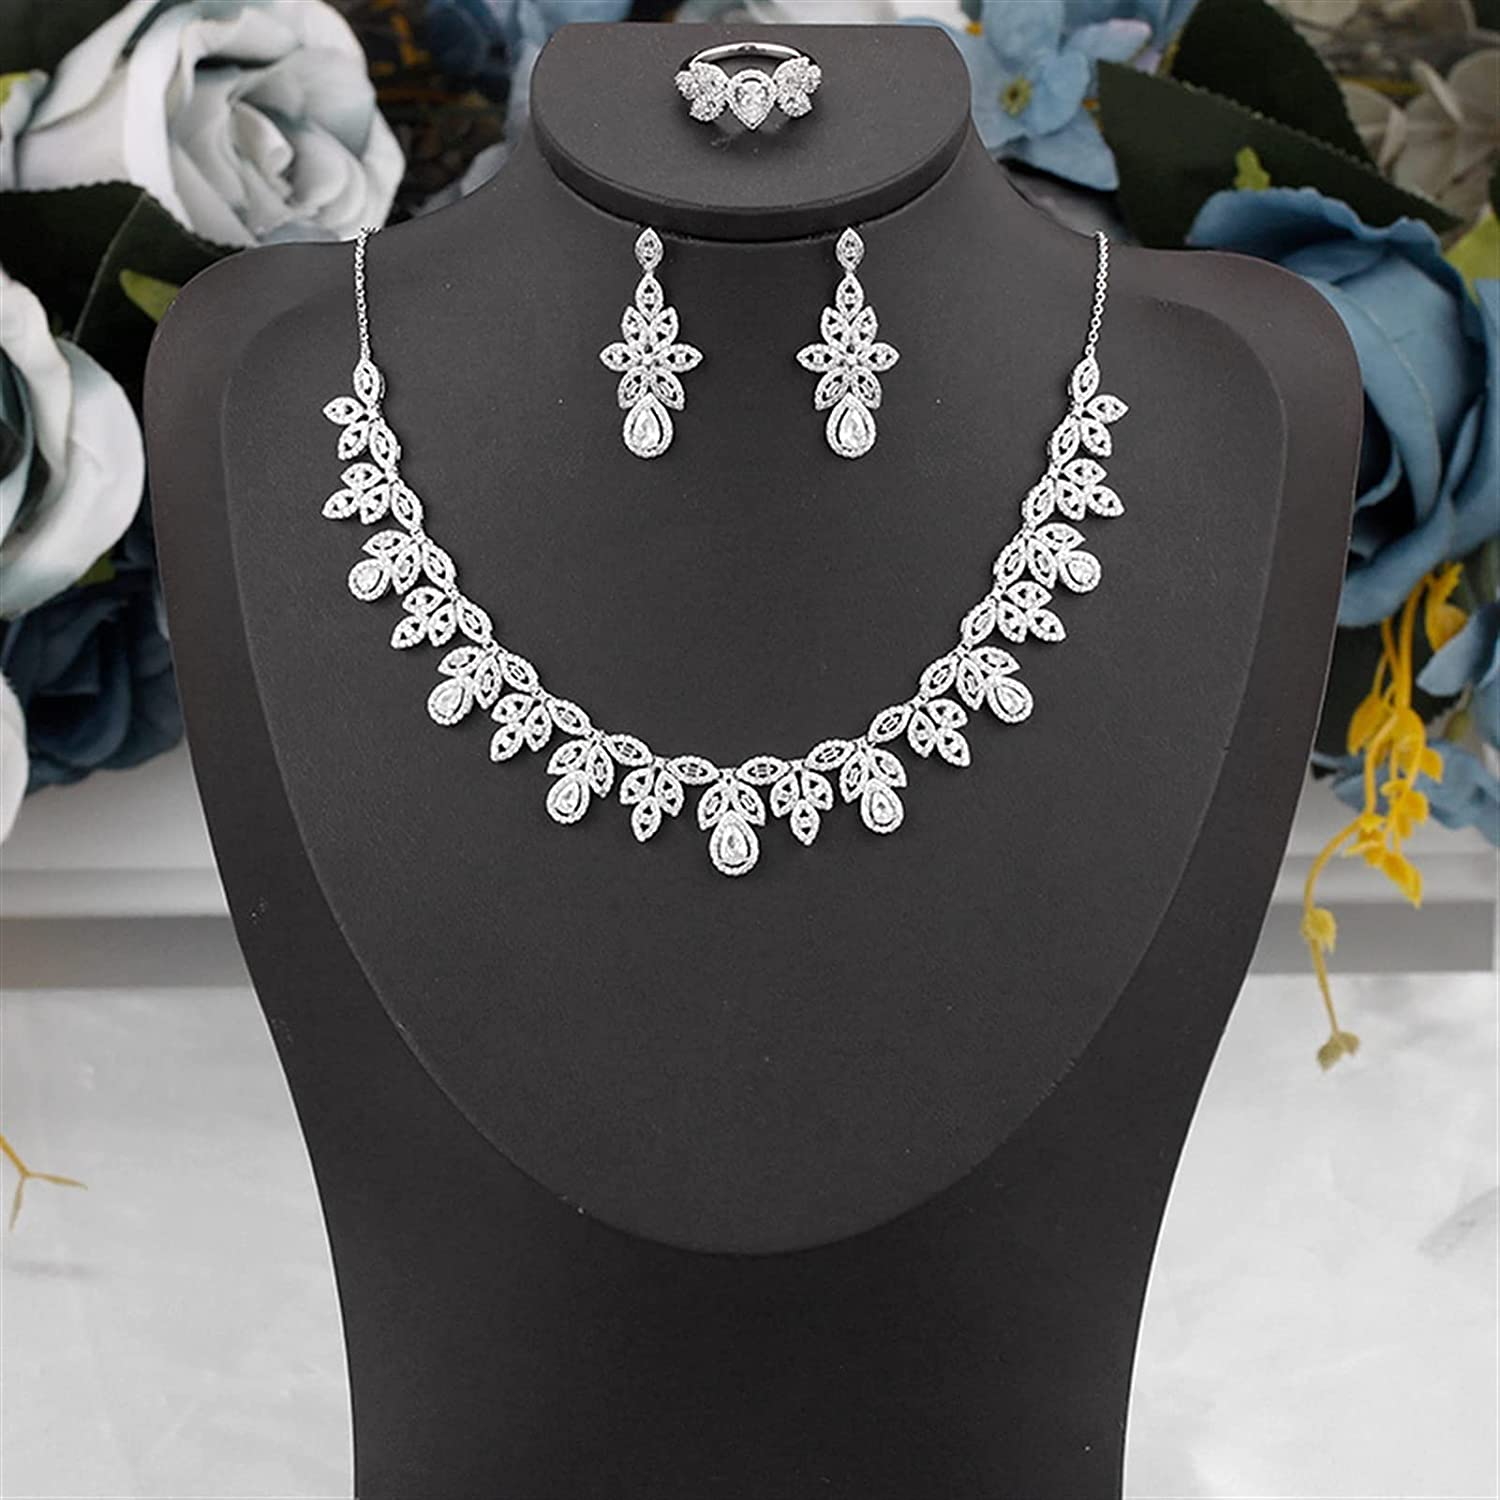 SYXMSM Jewellery Set WomenJewelry Wedding Cubic for Tampa Don't miss the campaign Mall Zirconia